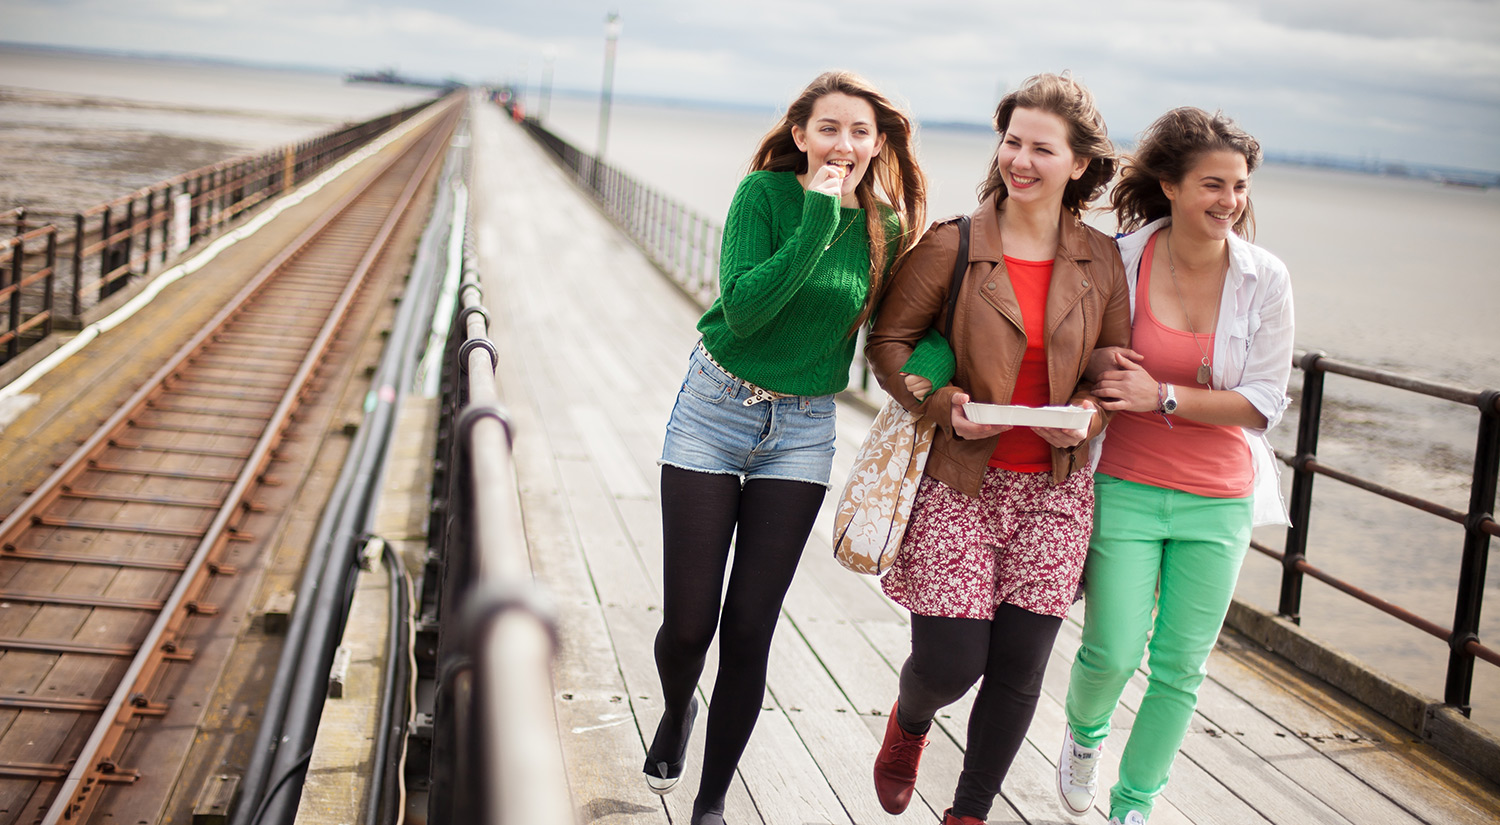 You can take a walk with friends down the world's longest pleasure pier